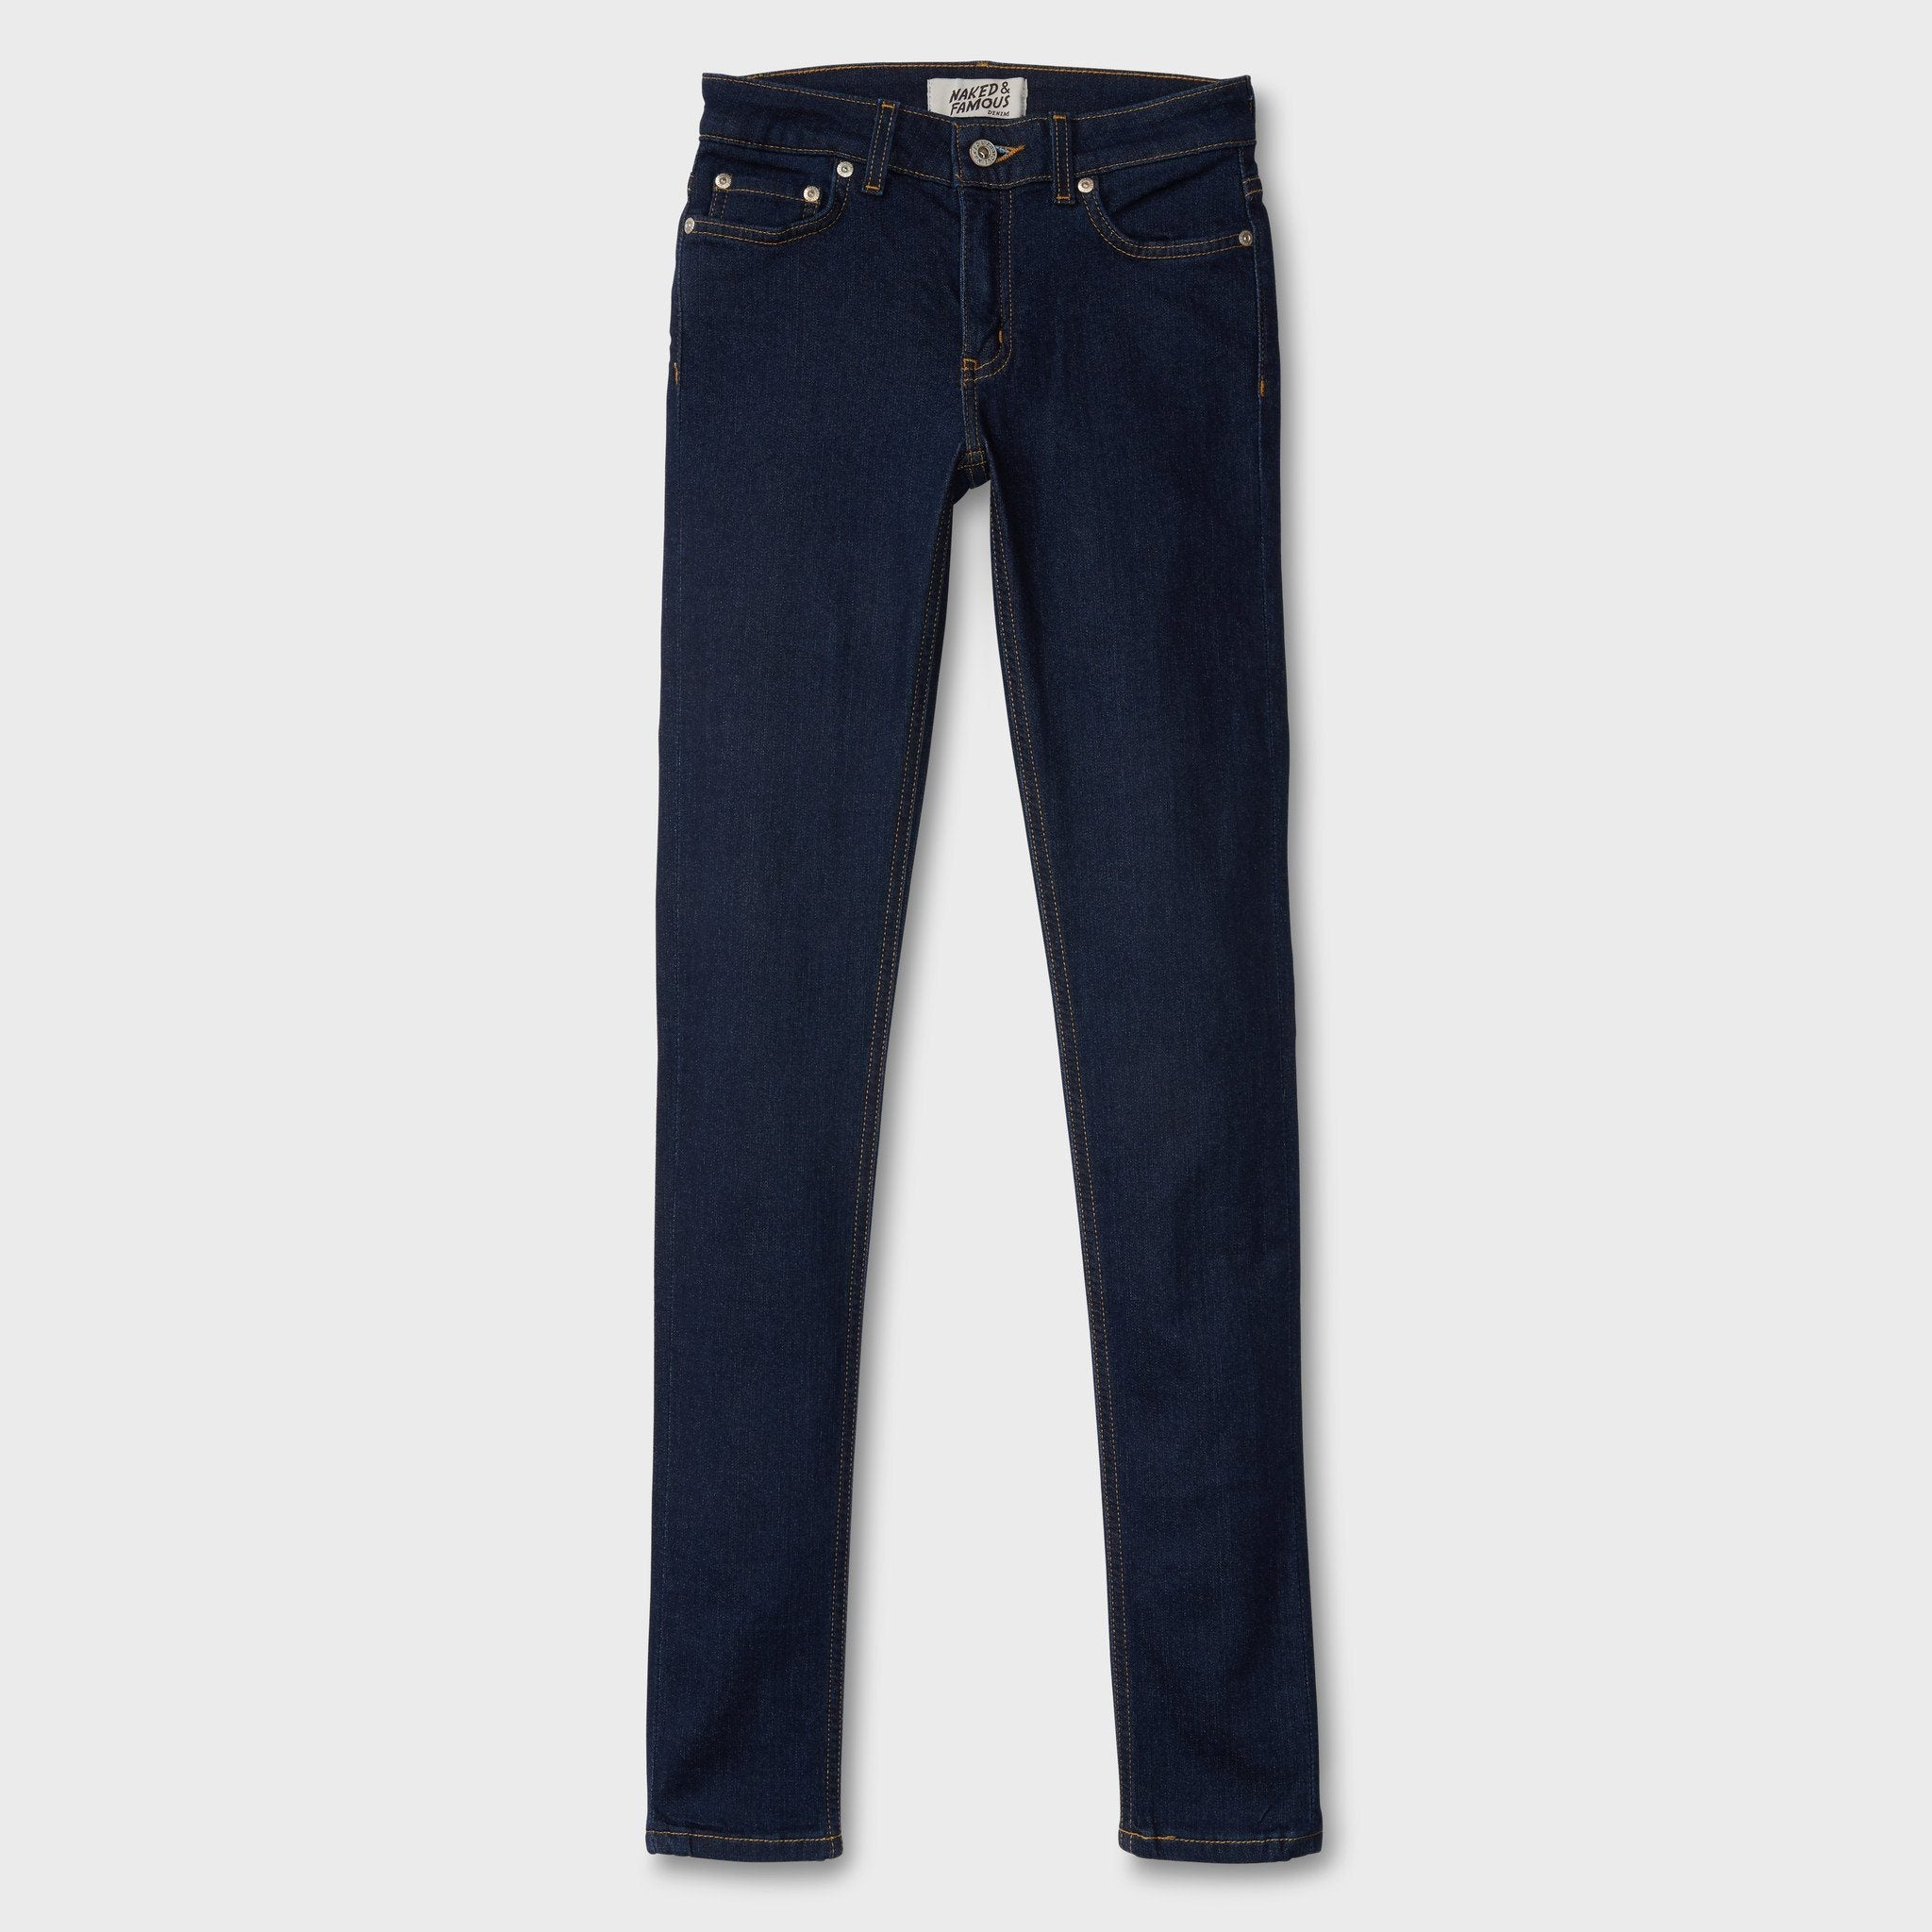 Naked & Famous Women's Ultra Soft Stretch Skinny Indigo